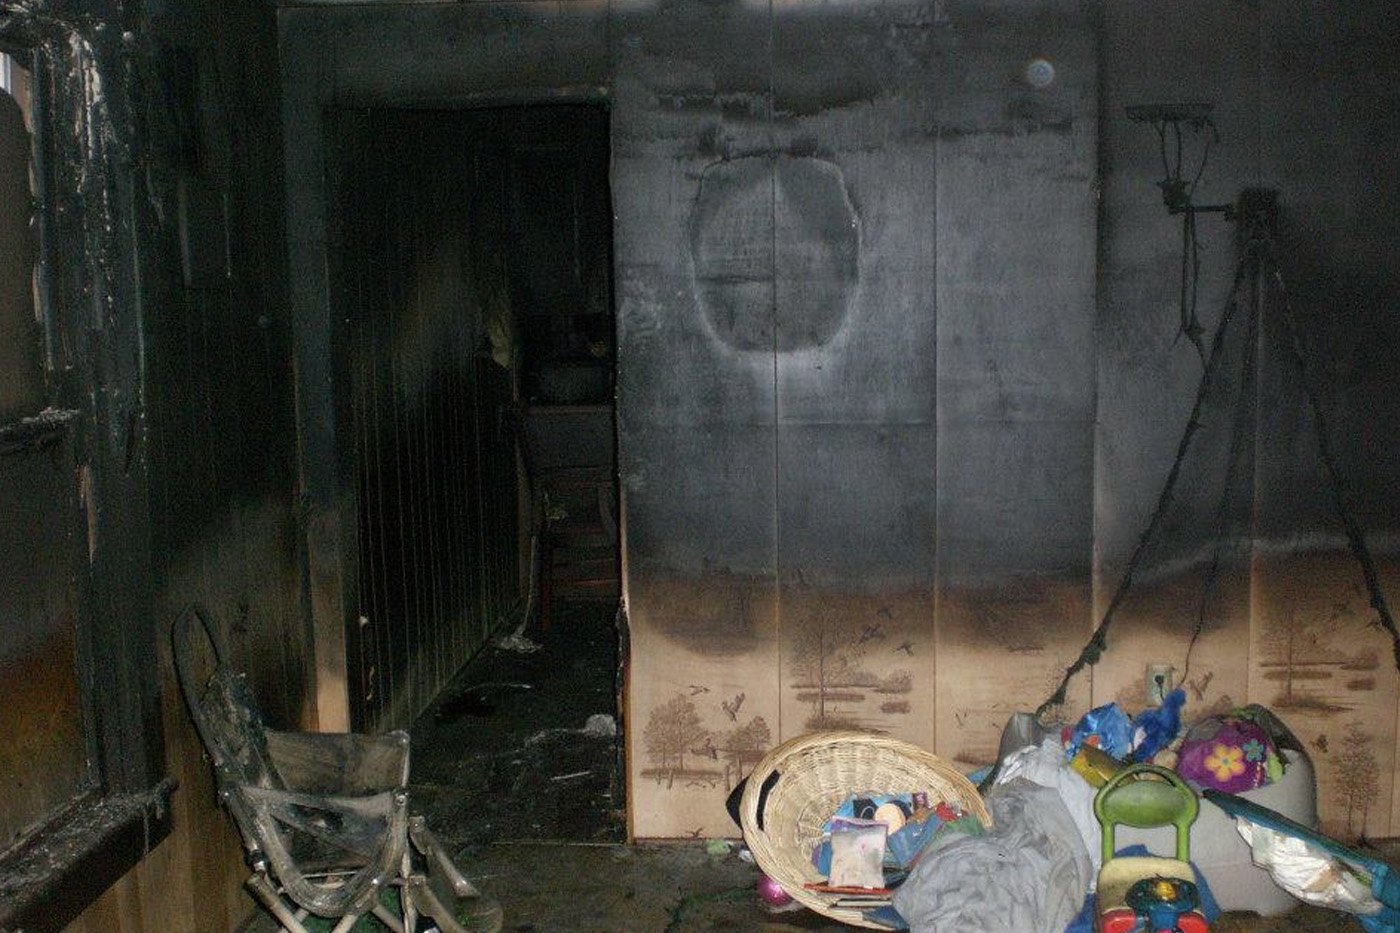 fire damage restorations services erie pa